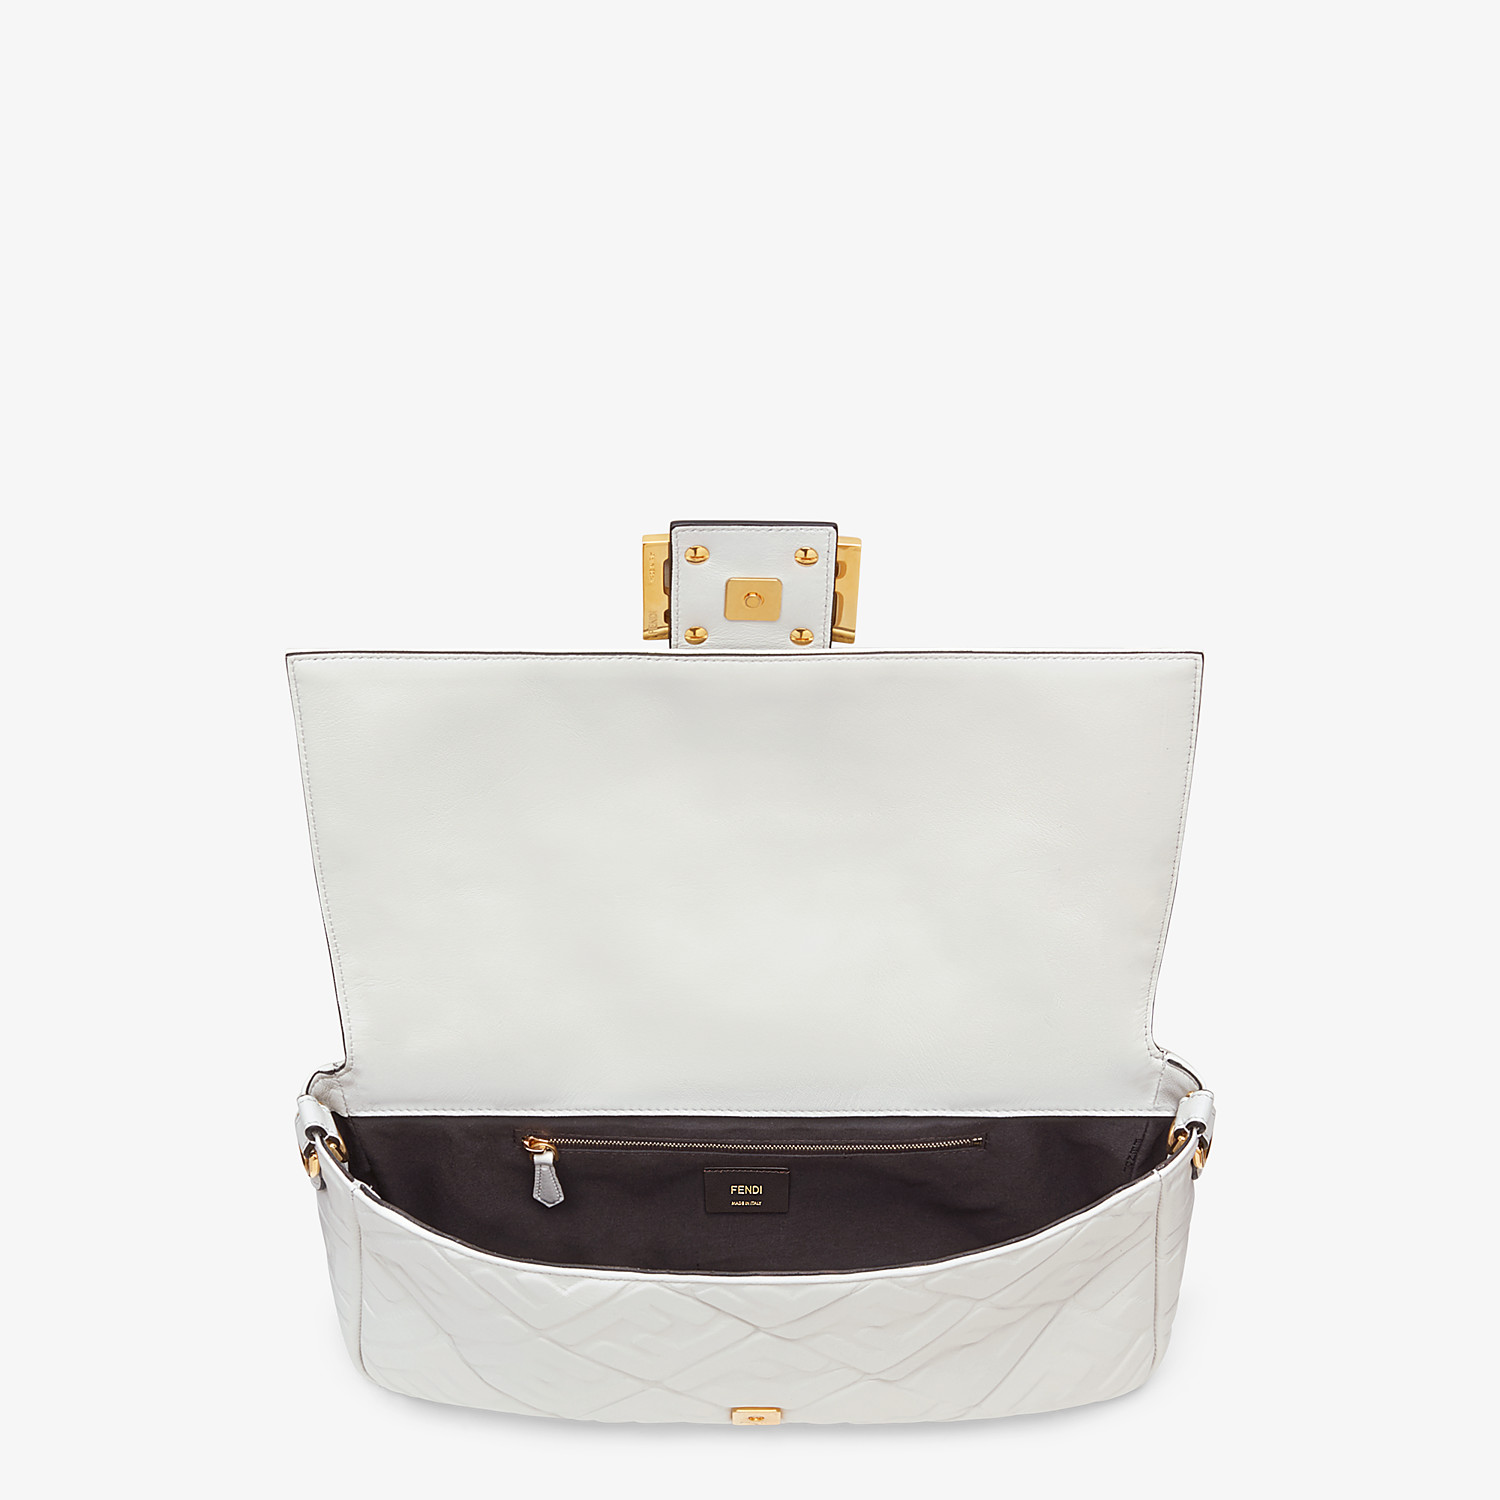 FENDI BAGUETTE LARGE - White leather bag - view 5 detail